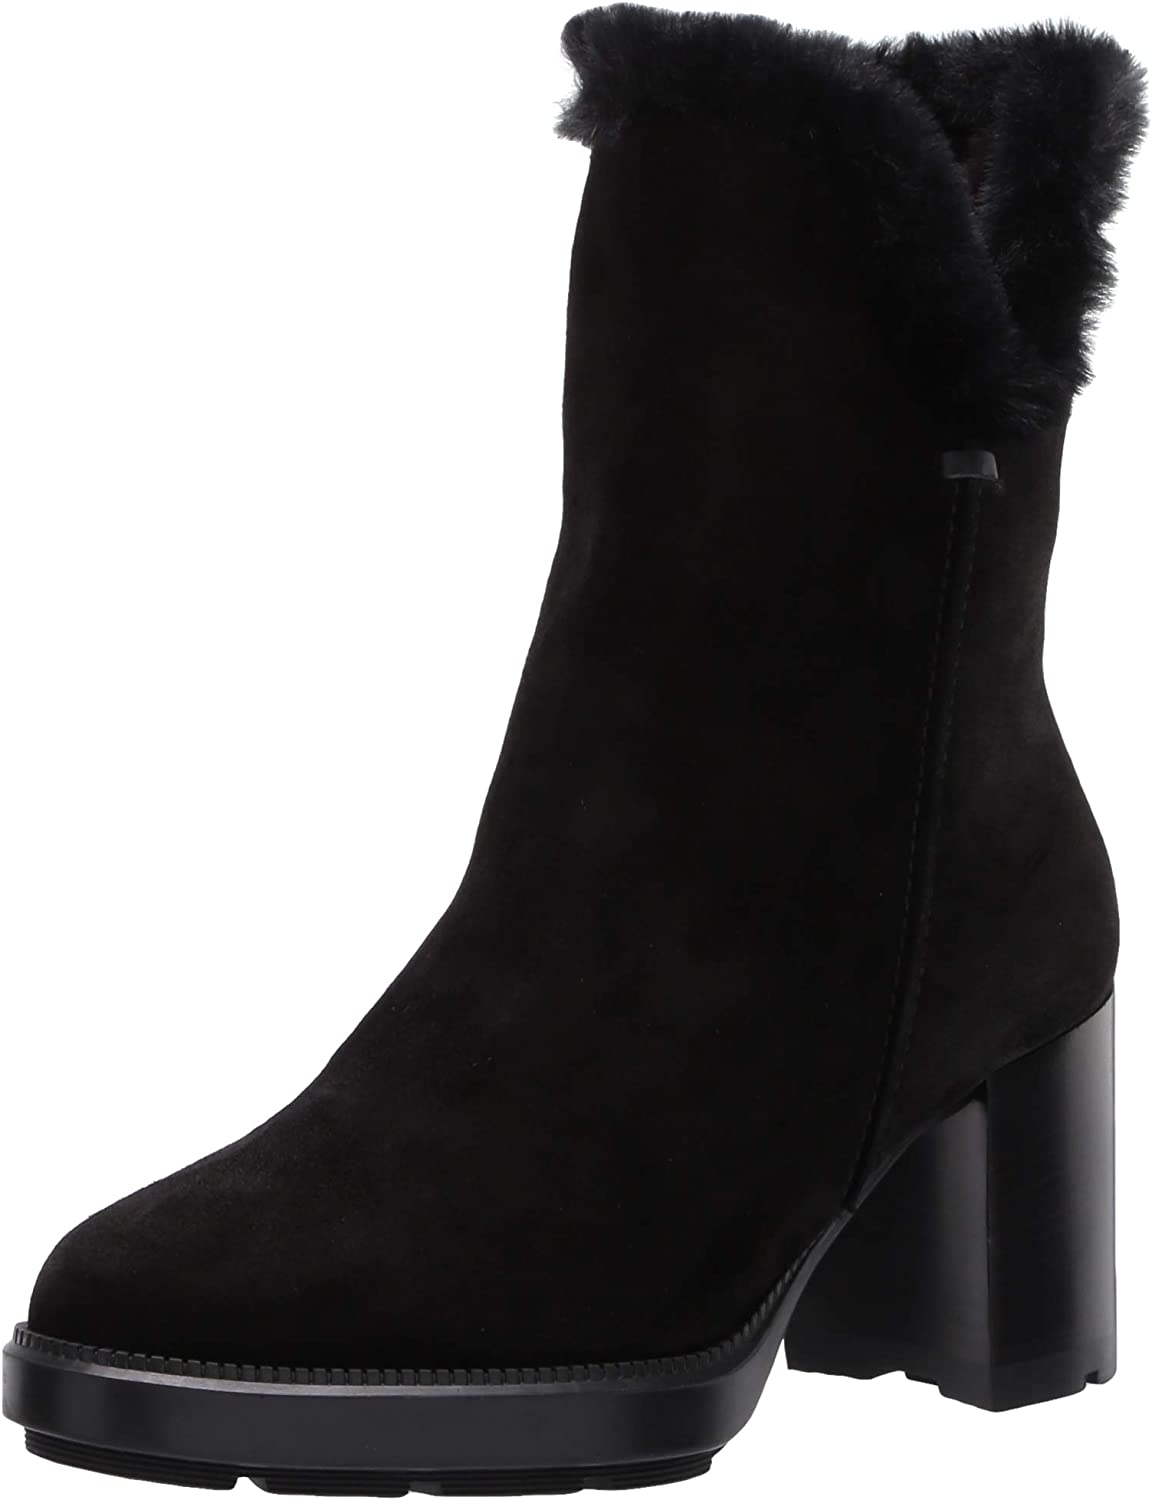 Aquatalia Women's Cold Weather Boot Ankle